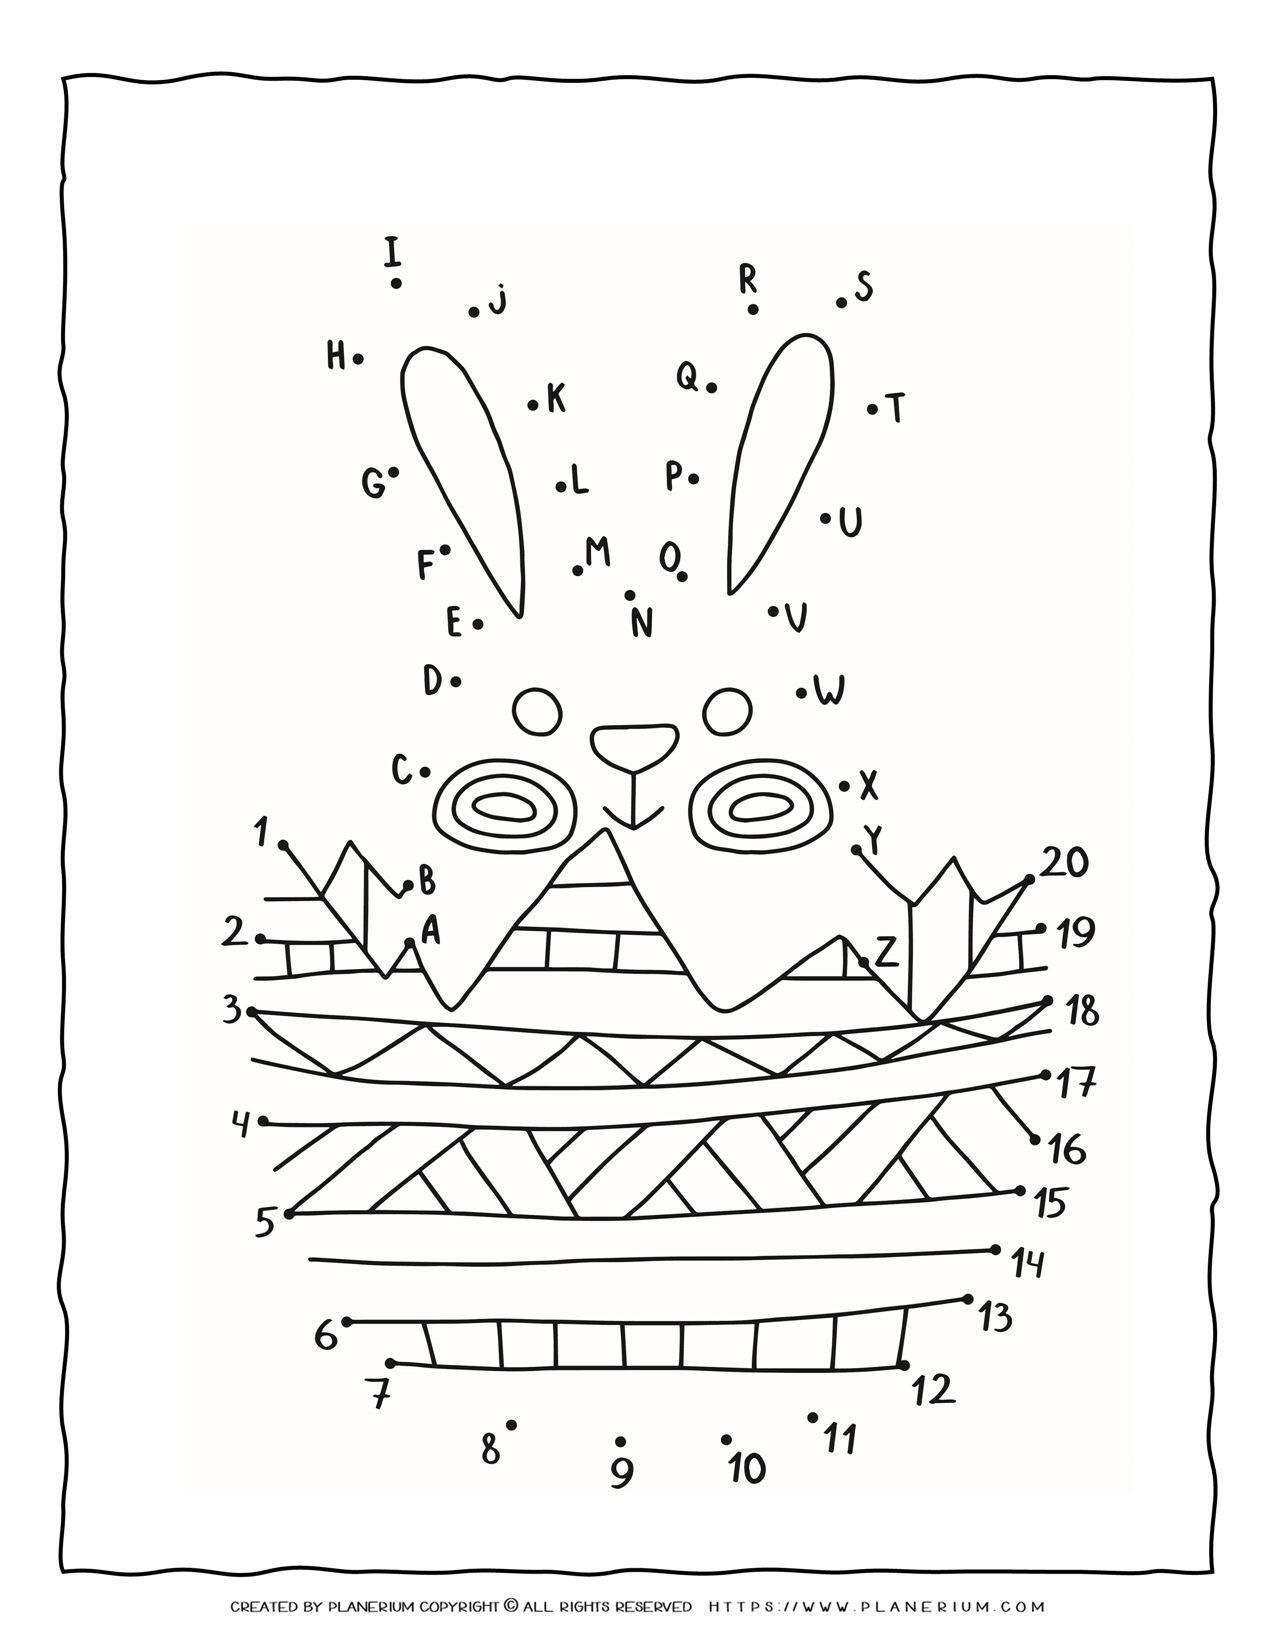 Connect The Dots - Easter Bunny | Planerium